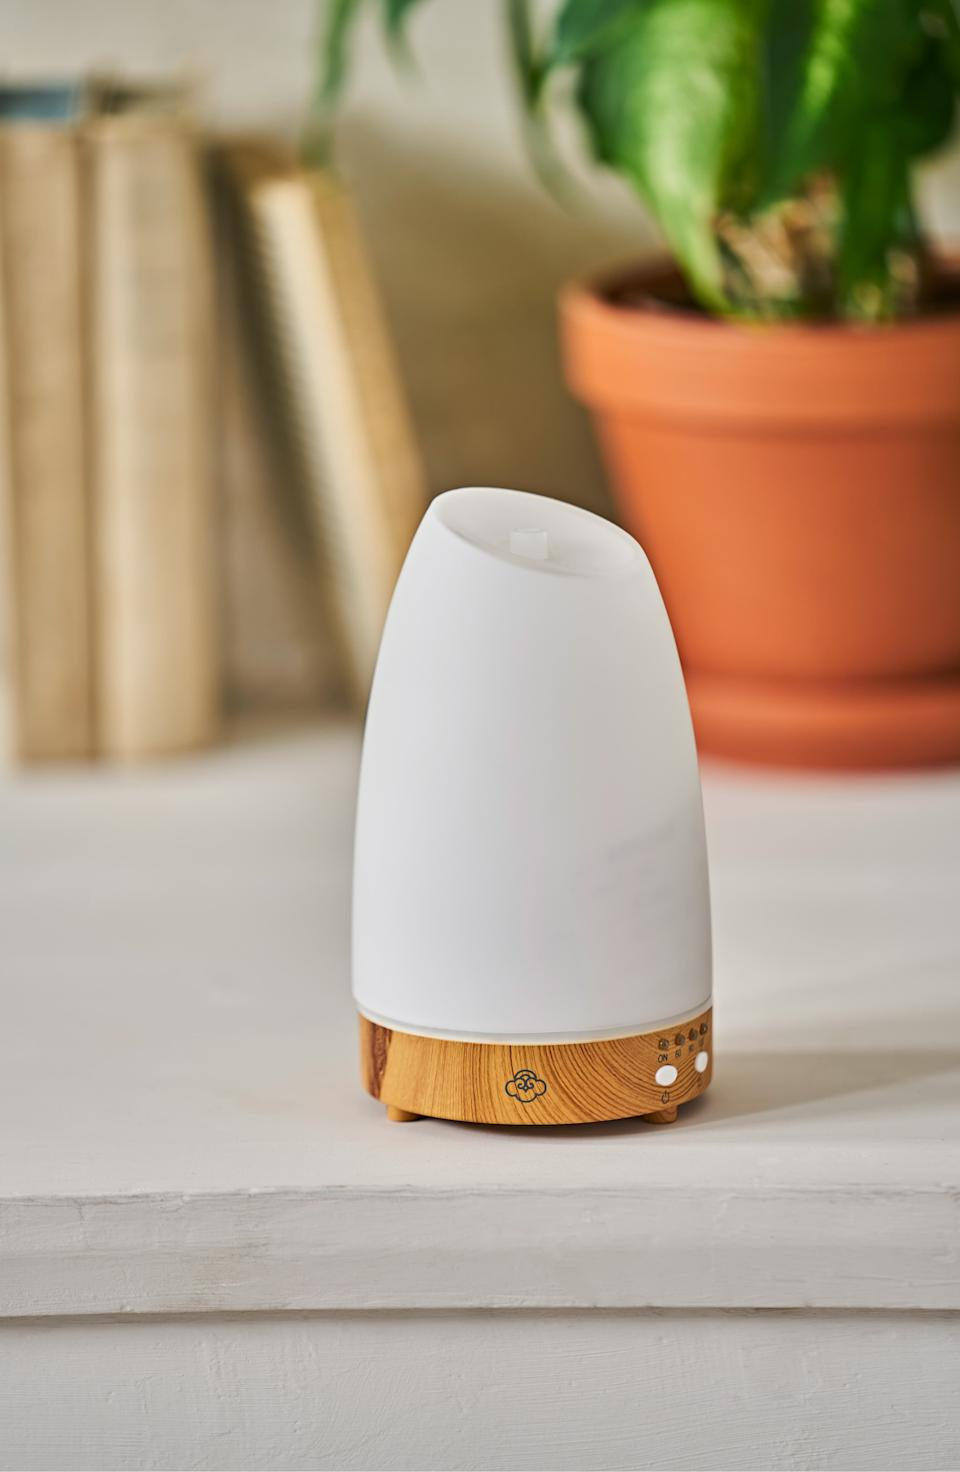 Serene House Ultrasonic Cool Mist Aromatherapy Diffuser. Image via Nordstrom.